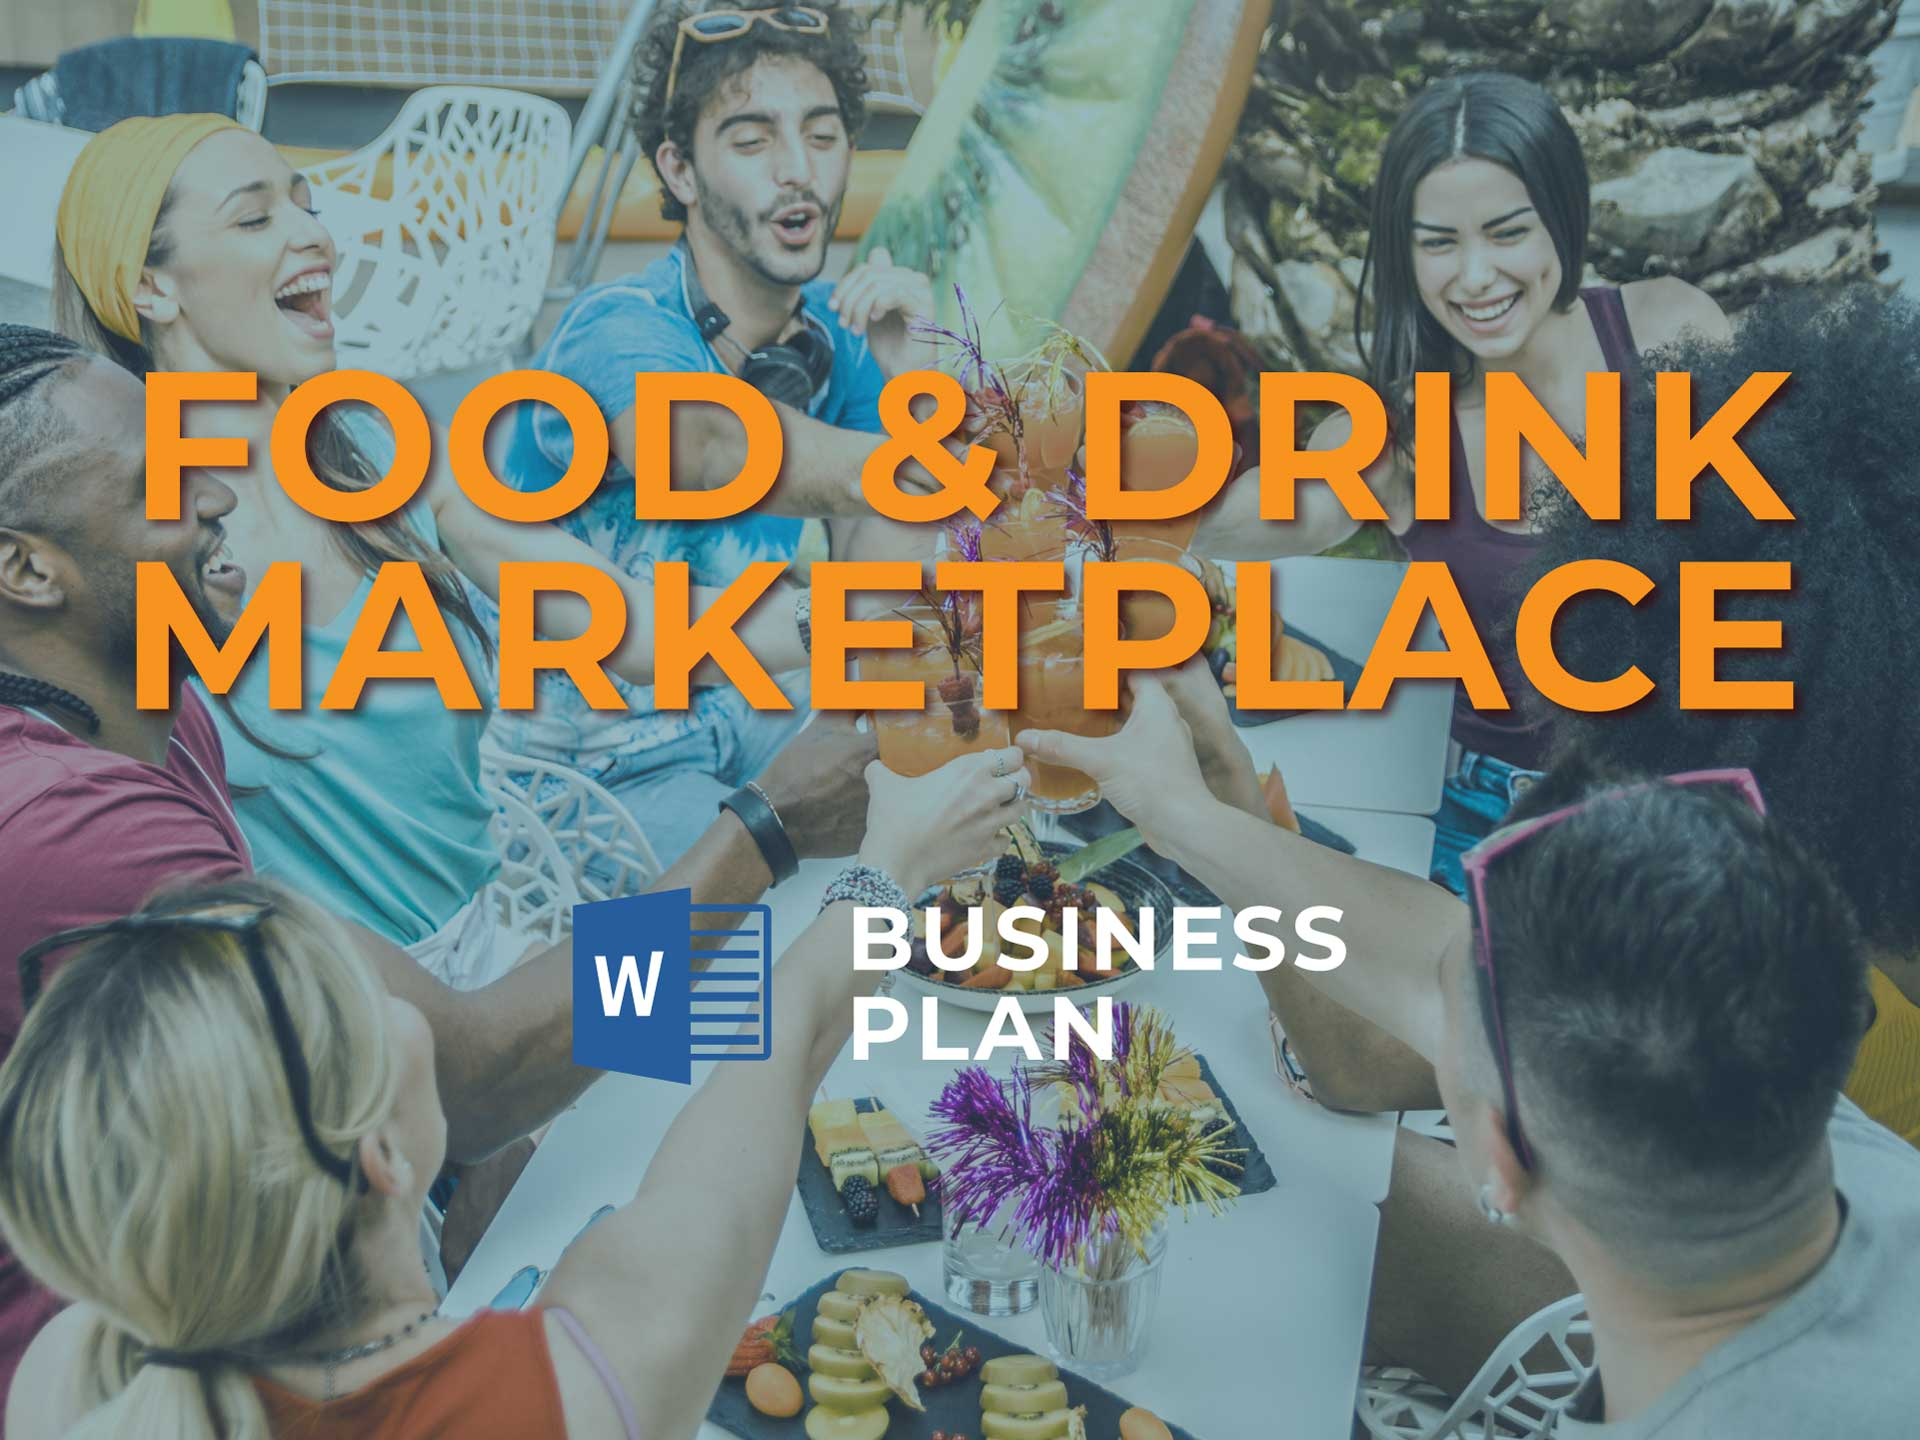 Food & Drink Marketplace